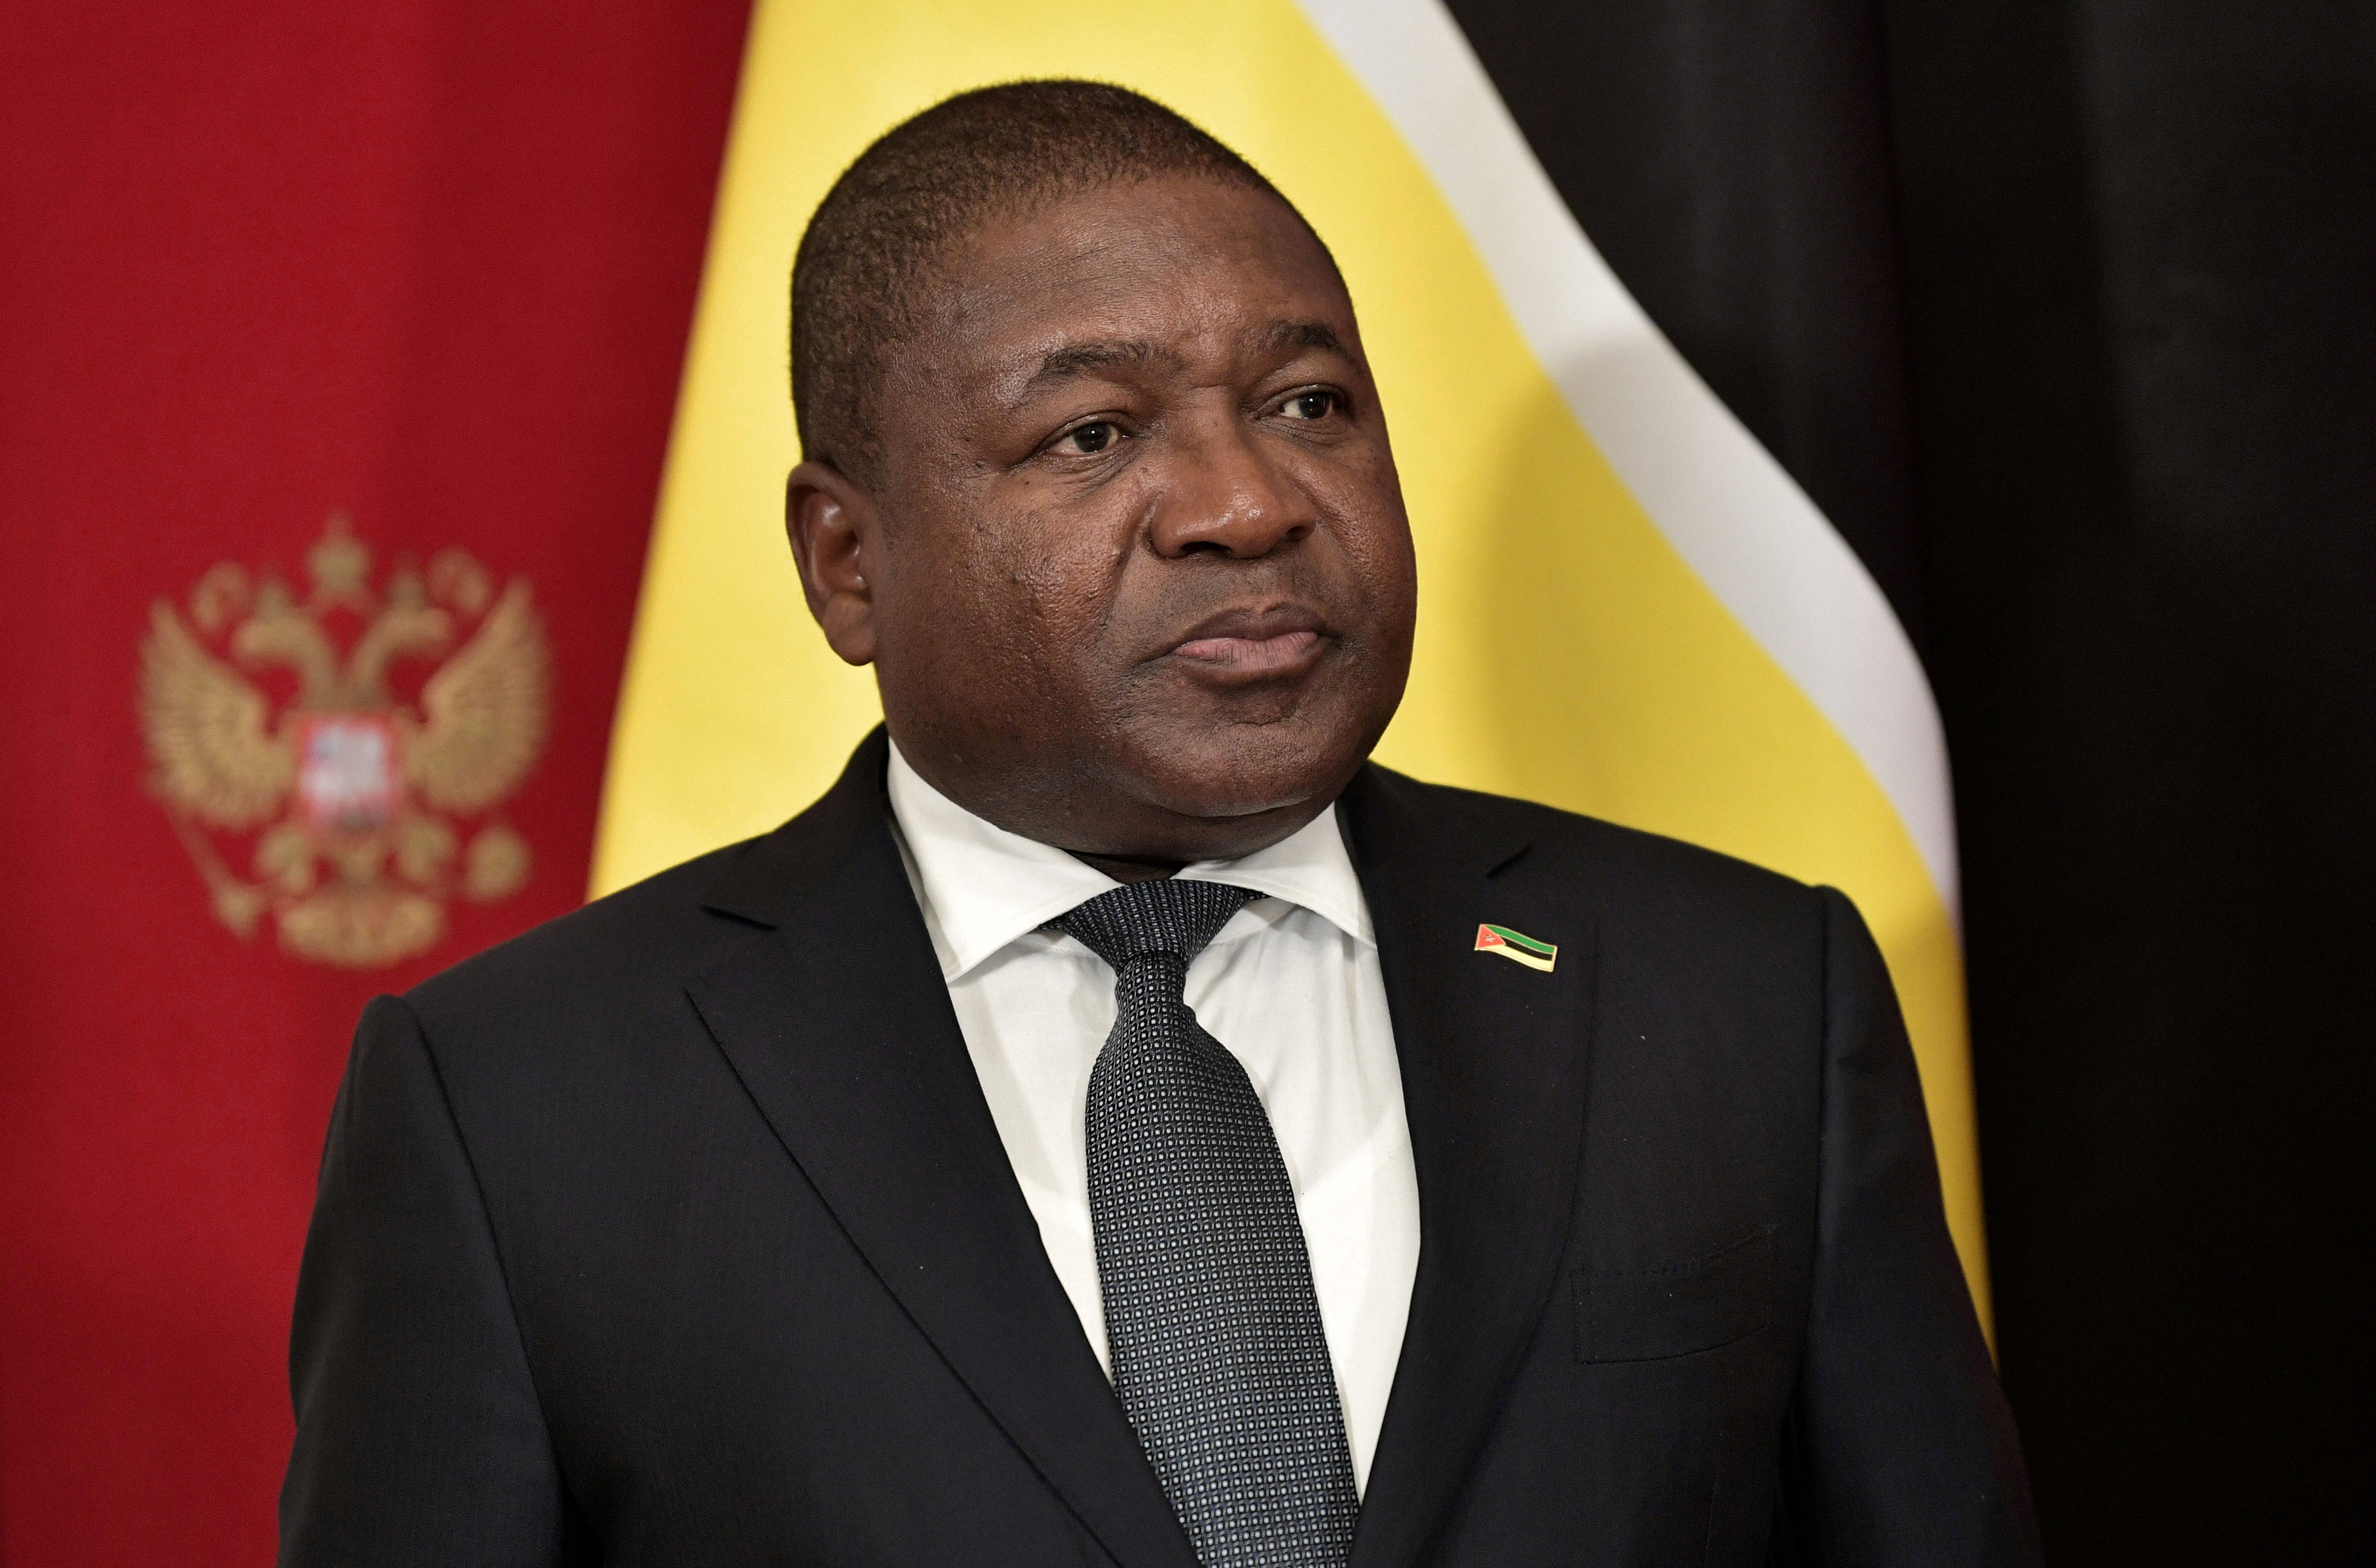 Mozambique's President Filipe Nyusi attends a signing ceremony following the talks with Russia's President Vladimir Putin in Moscow, Russia August 22, 2019. Sputnik/Alexey Nikolsky/Kremlin via REUTERS/File Photo